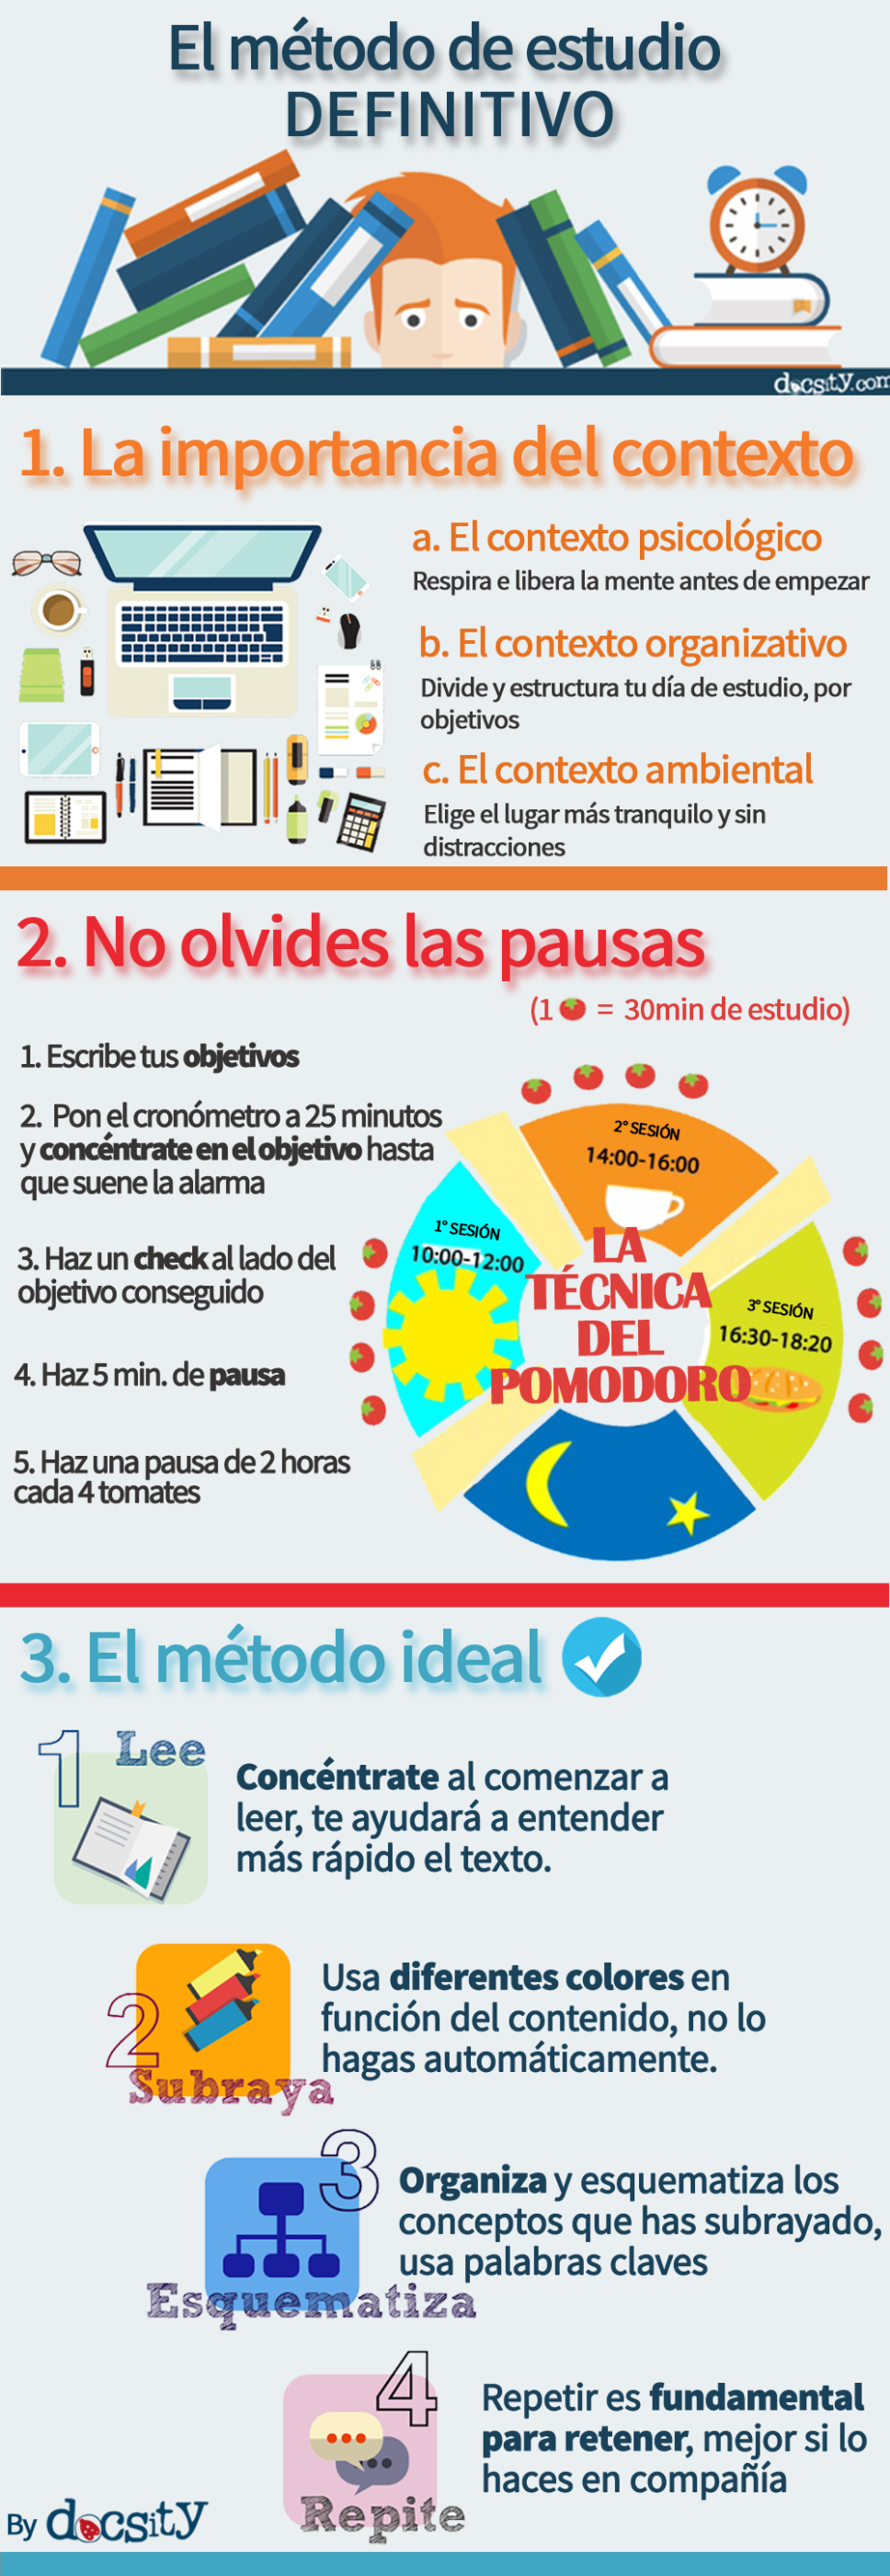 El método de estudio definitivo #infografia #infographic #education